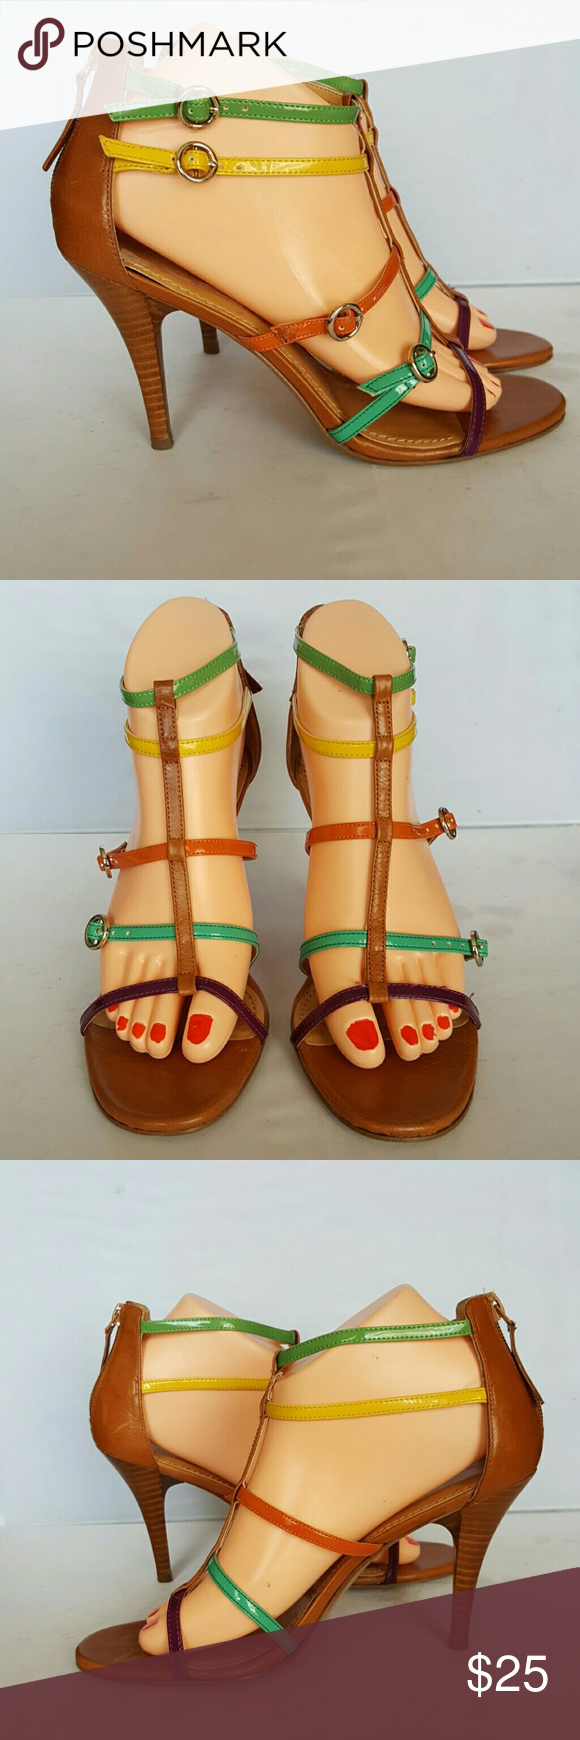 "Nine West Jimny Dee Multicolor Gladiator Sandals The Jimmy Dee sandal features an approximate 4"" heel, manmade sole and uppers, with four adjustable straps and rear zip. This is a great shoe that will work well with any ensemble. Nine West Shoes Sandals"